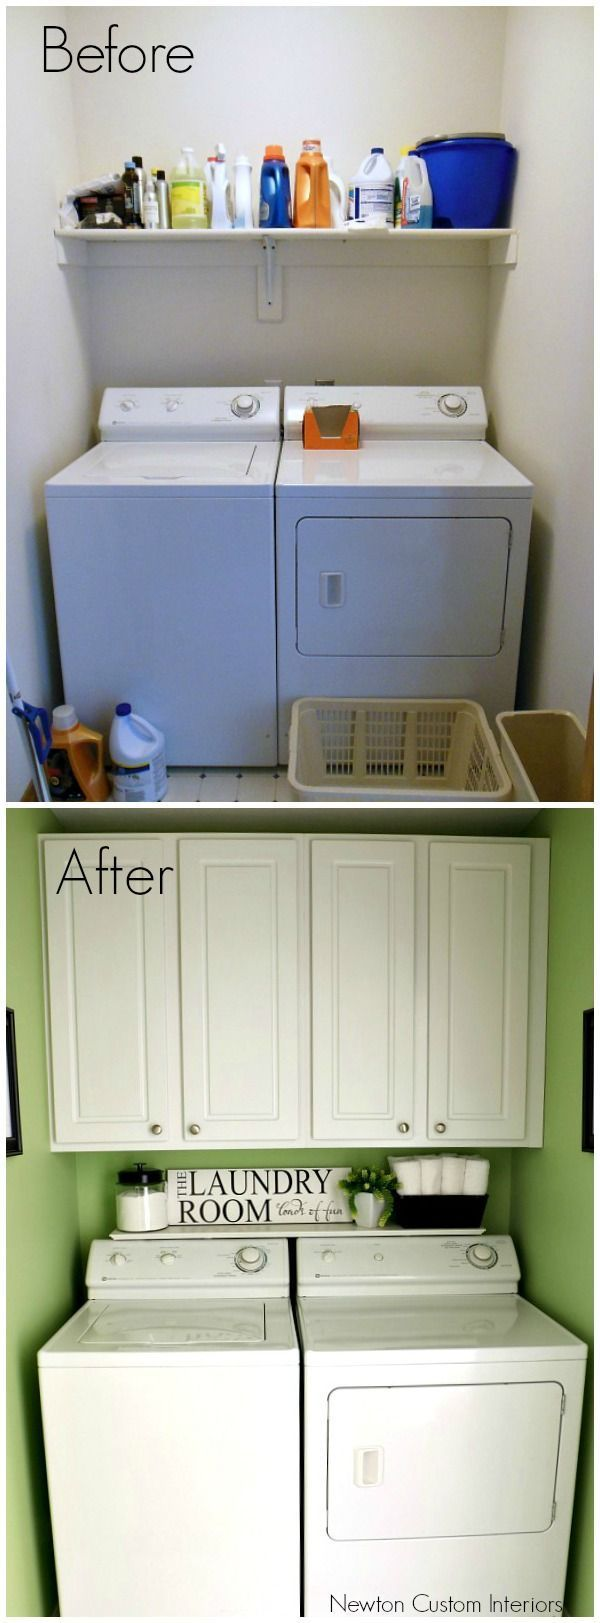 Best 25+ Laundry room shelves ideas on Pinterest | Laundry room ...